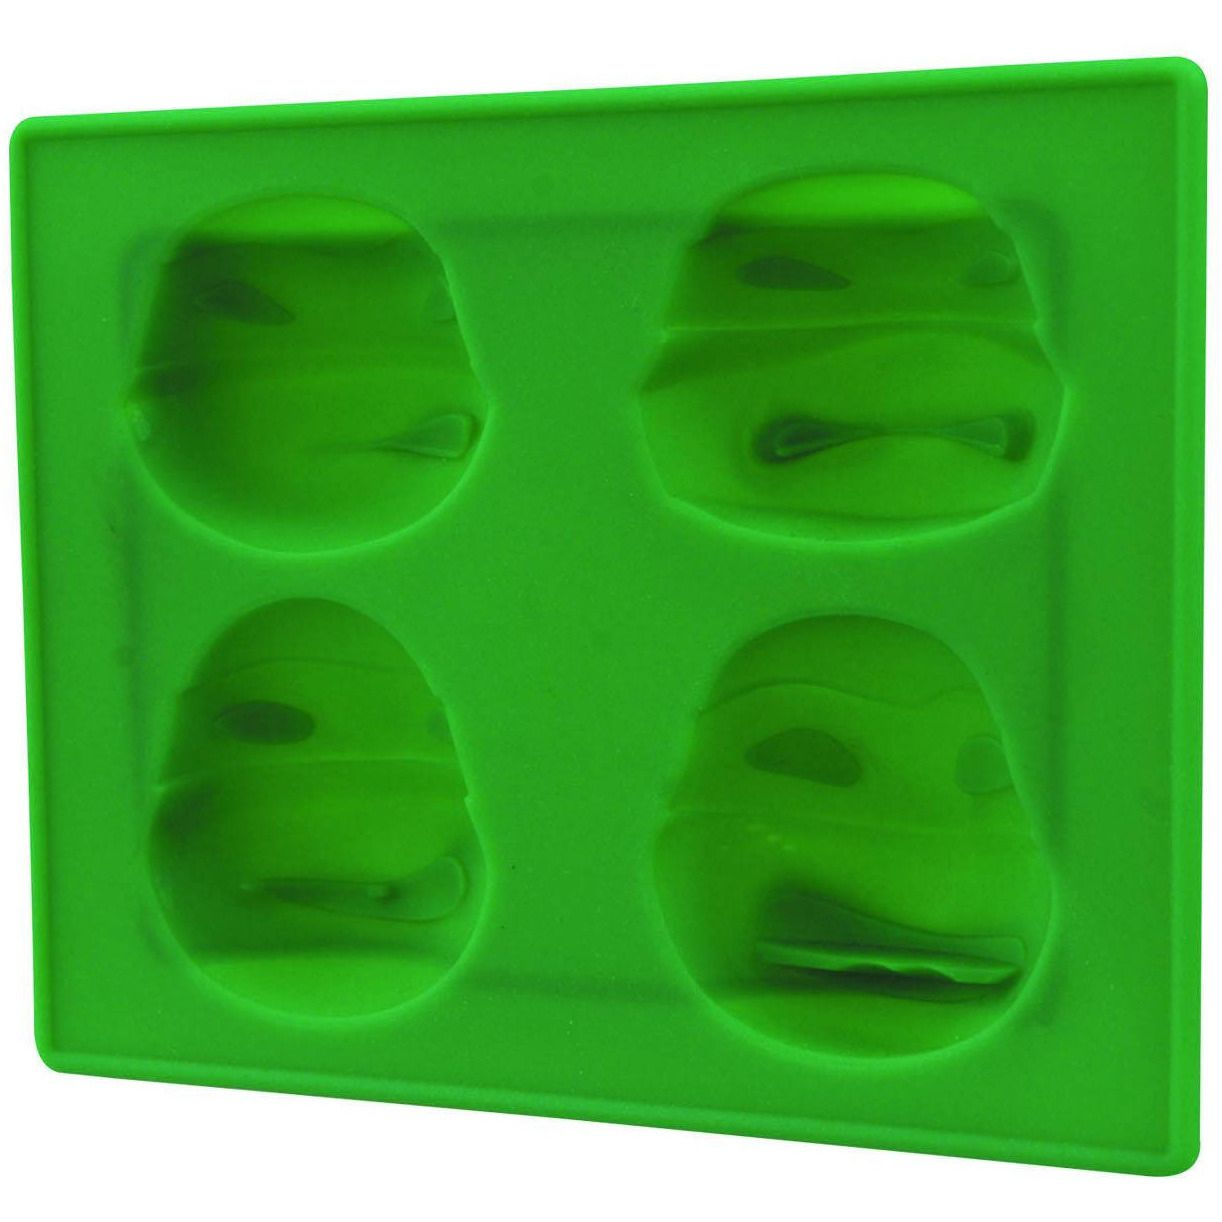 Teenage Mutant Ninja Turtles Silicone Tray Uncanny!